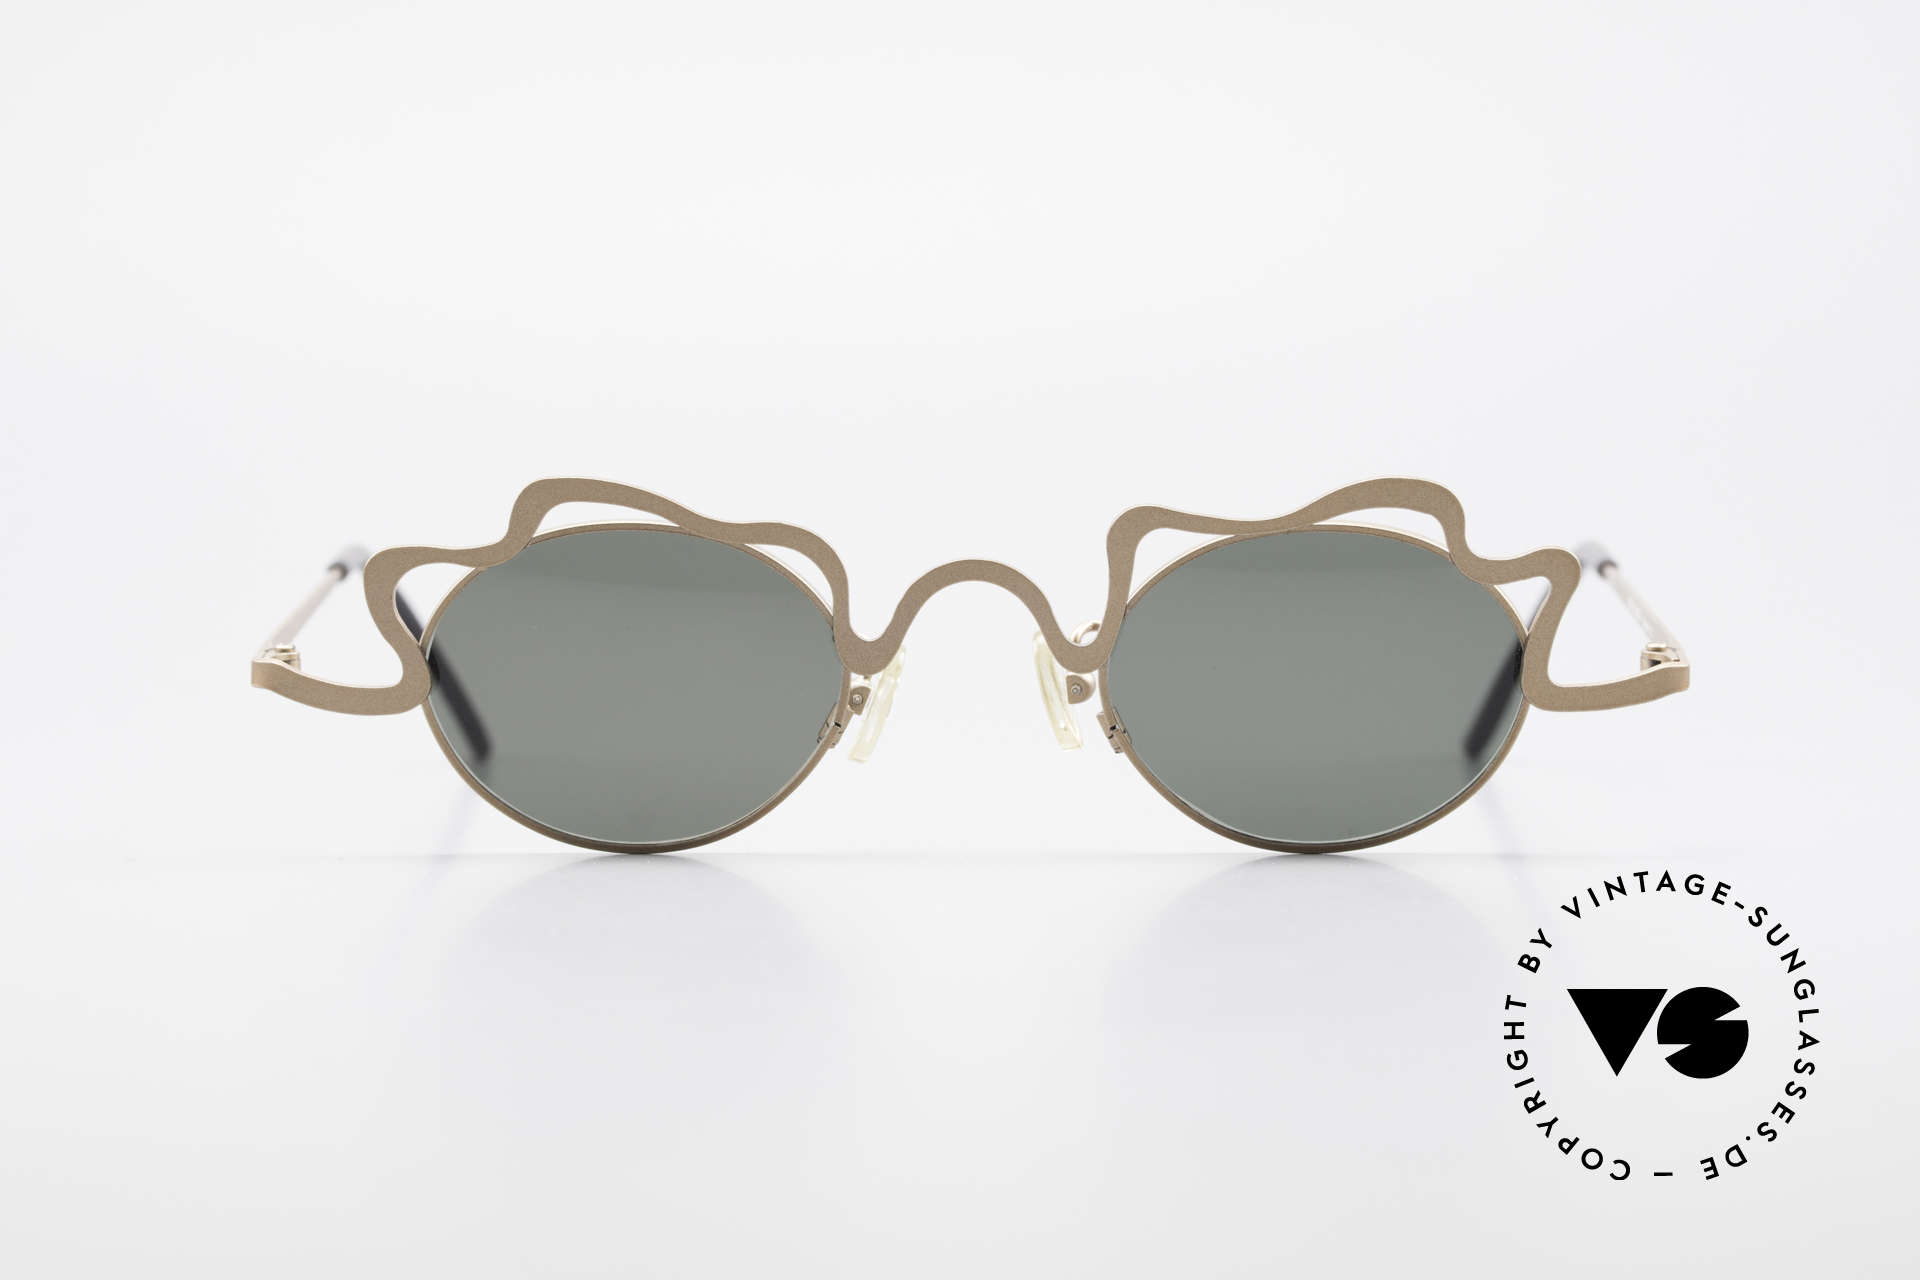 Theo Belgium Tortelini Spaghetti Sunglasses Ladies, founded in 1989 as 'anti mainstream' eyewear / glasses, Made for Women